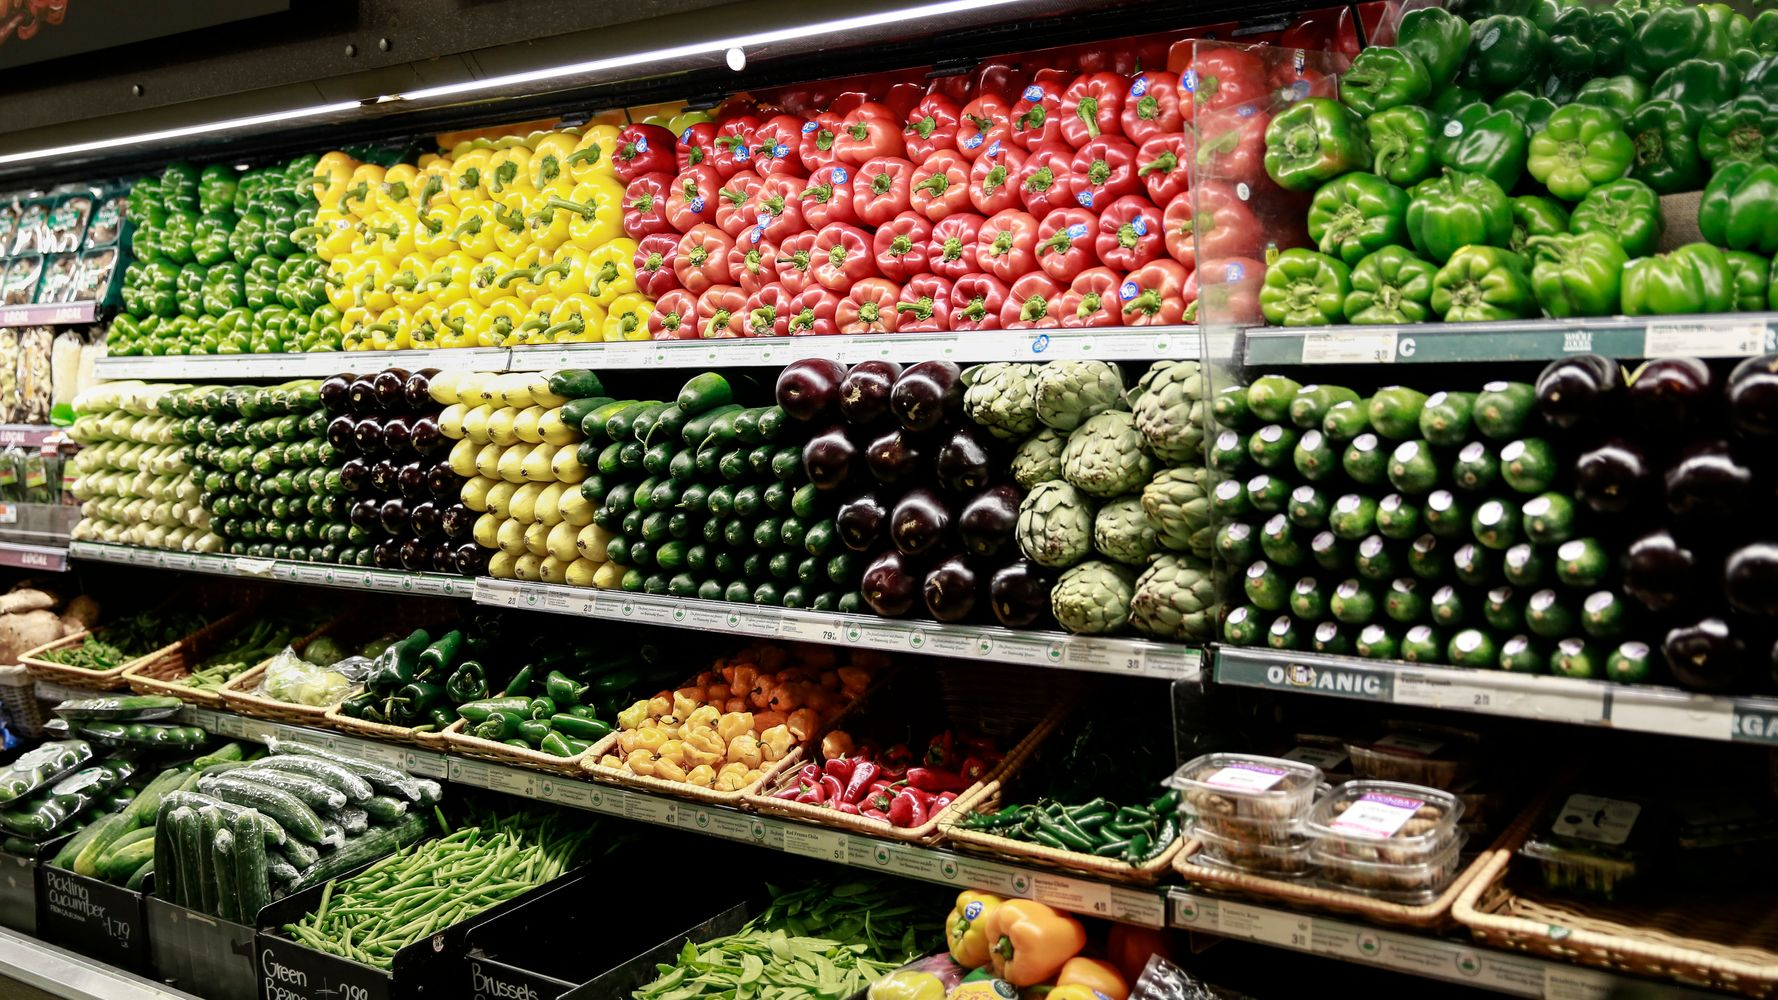 These Stunning Grocery Store Photos Are Hiding A Dark Secret